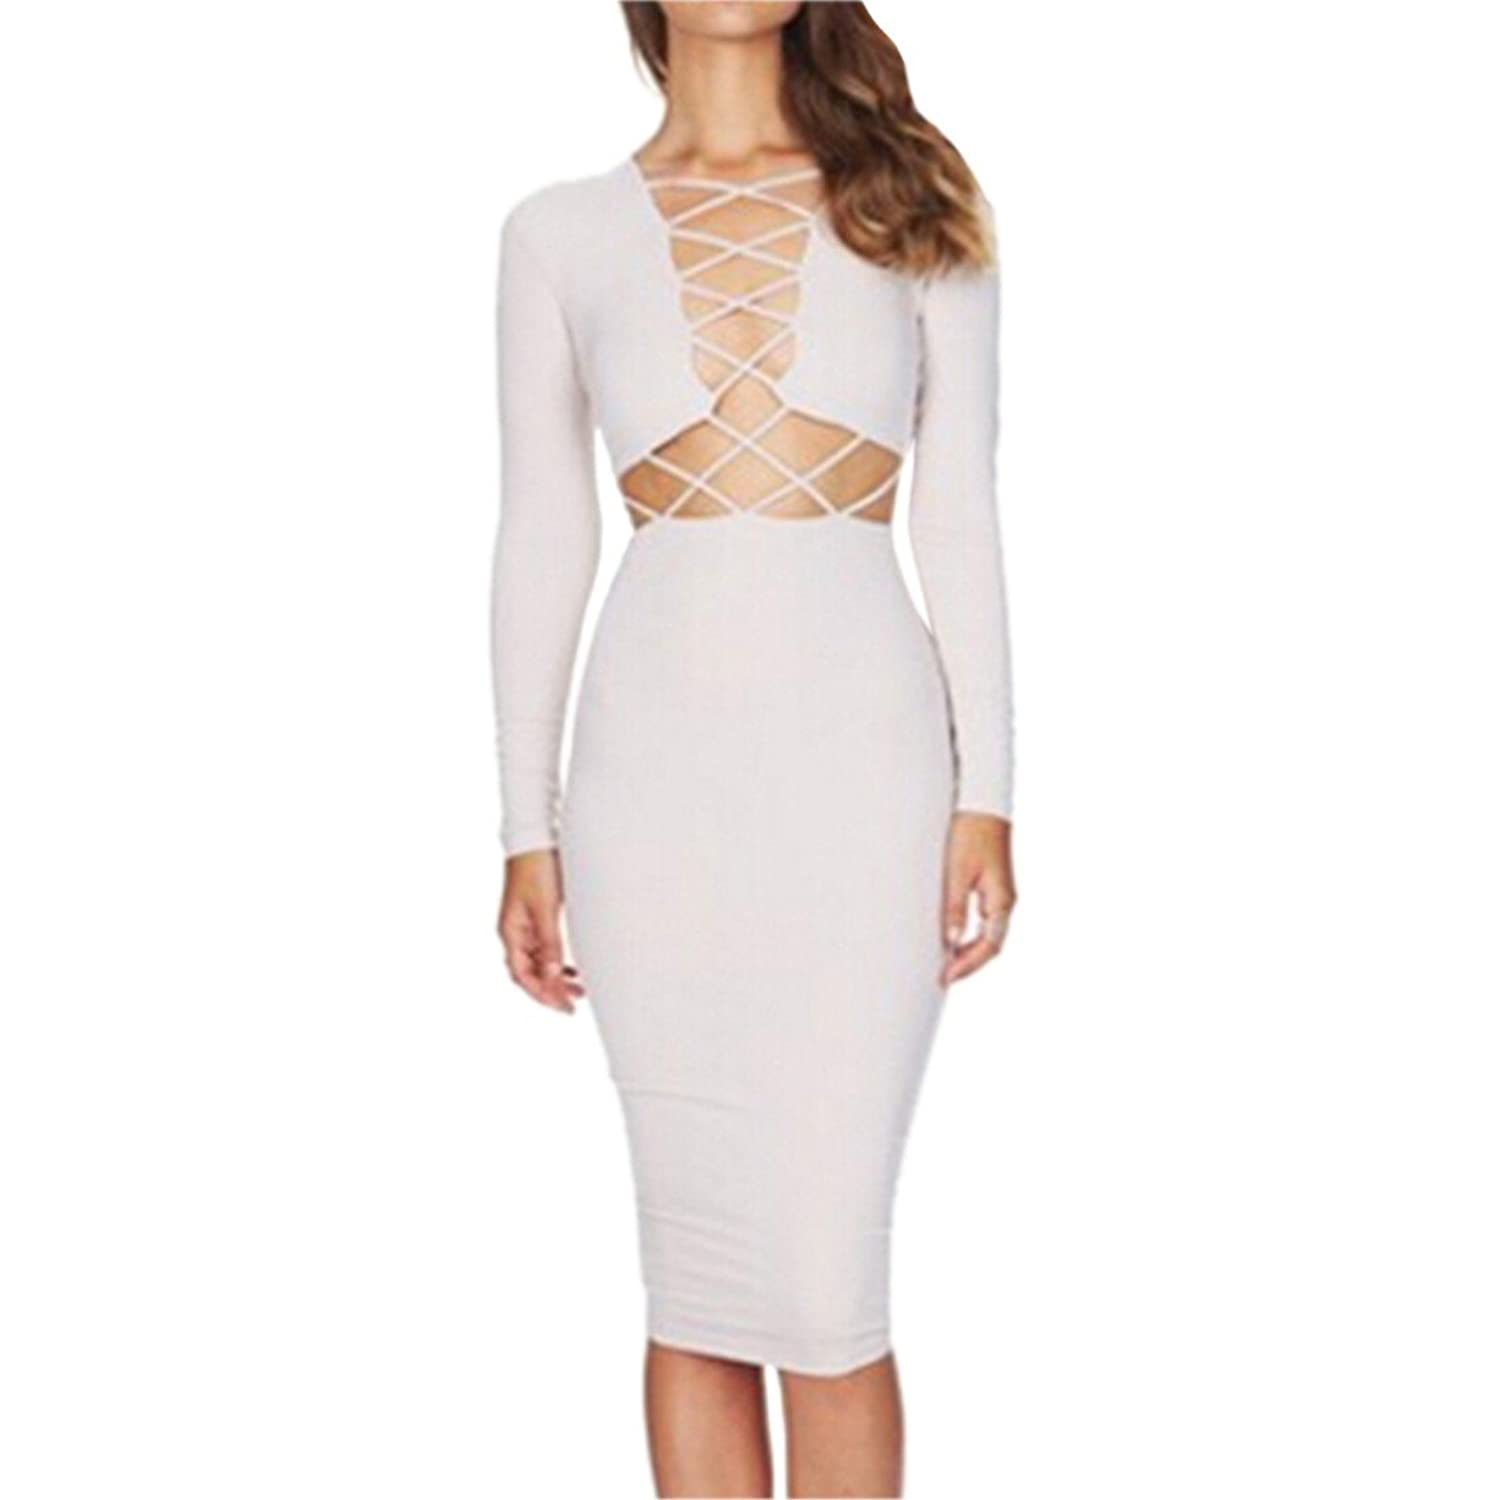 New Women Long Sleeve Hollow Lace Up Bodycon Slim Dress Cocktail Evening S-L